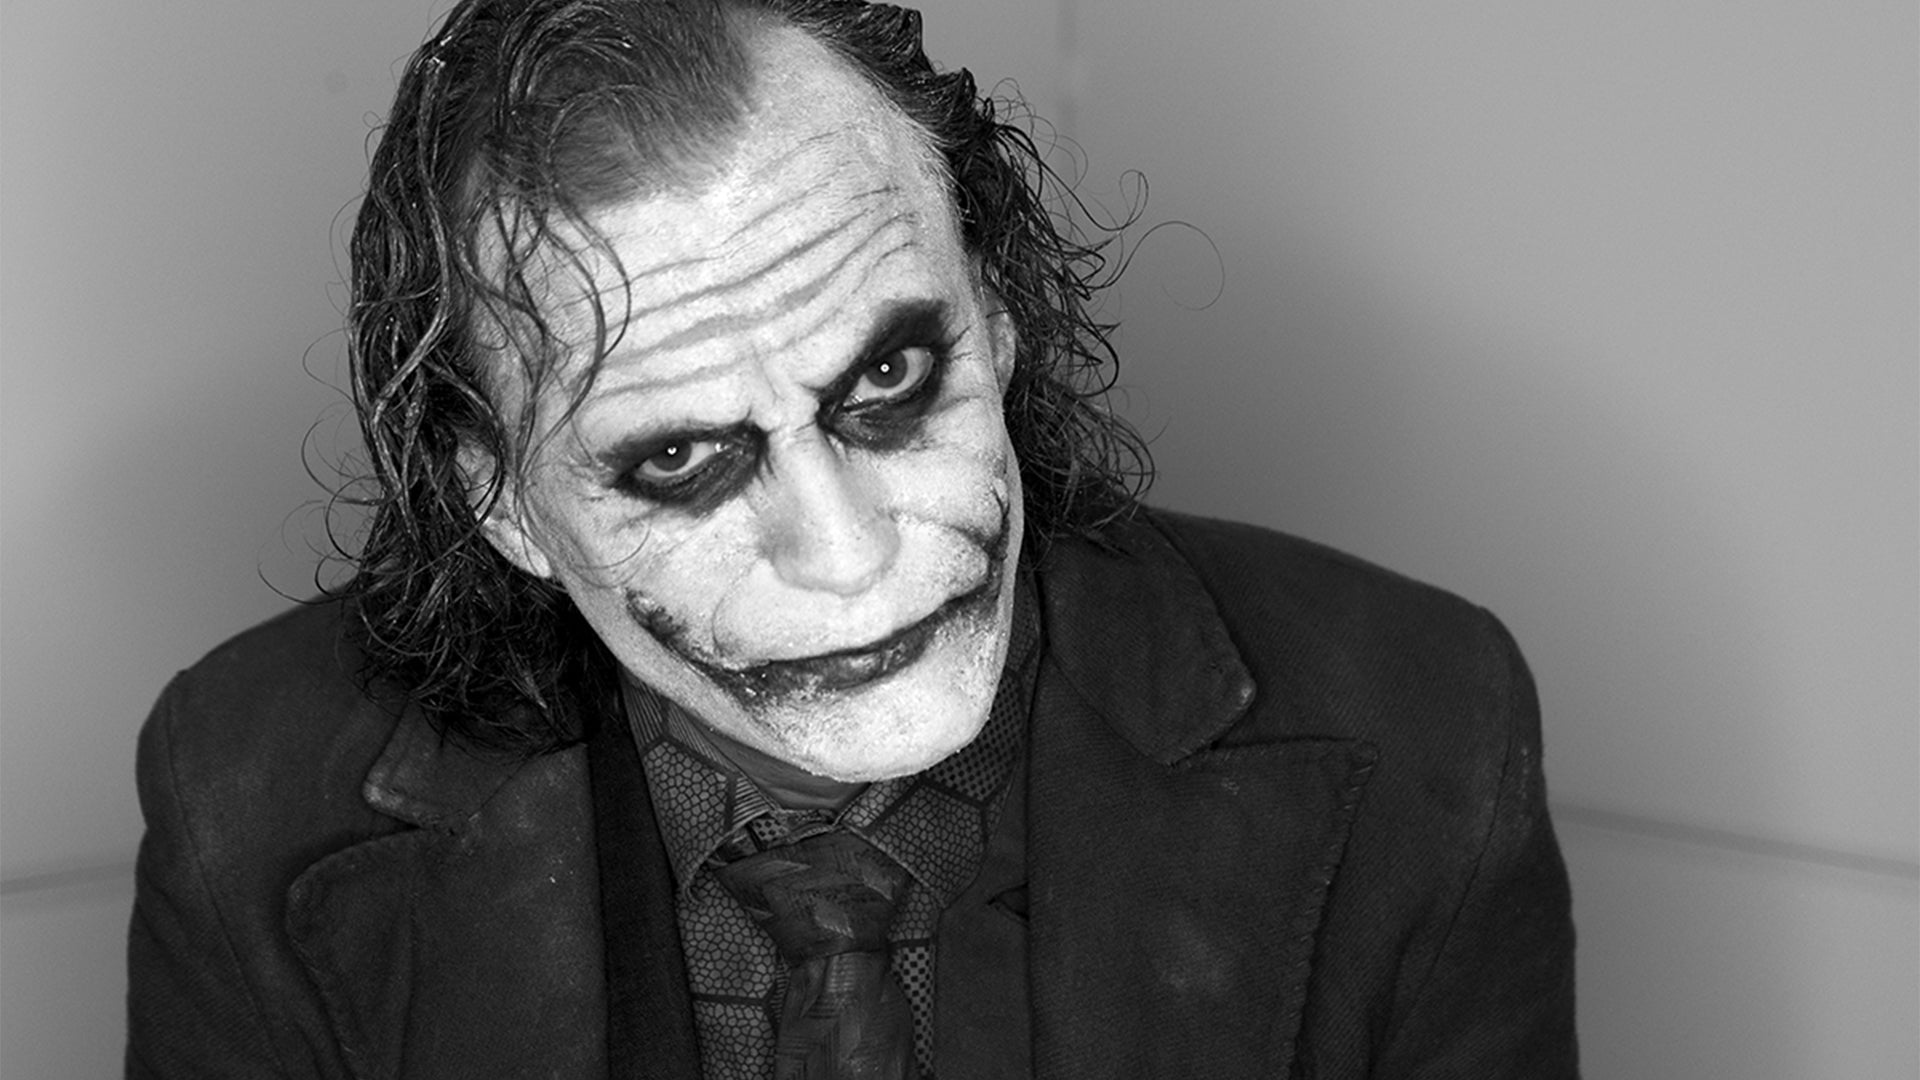 v-flats portraits cosplay joker